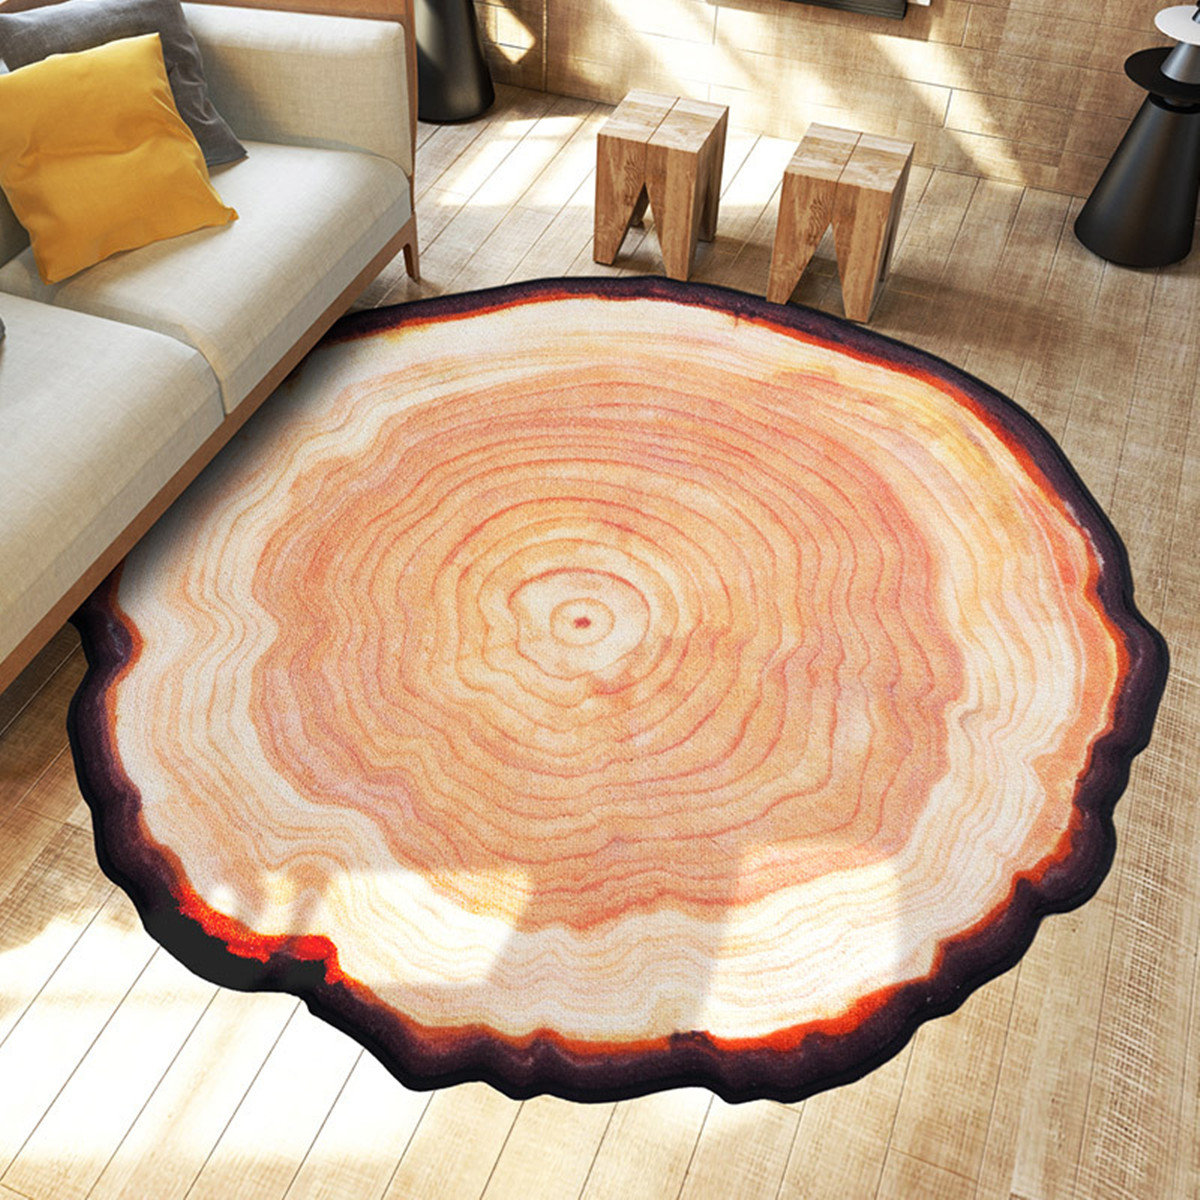 Non Slip Round Shaggy Fluffy Area Rug Floor Mat Living